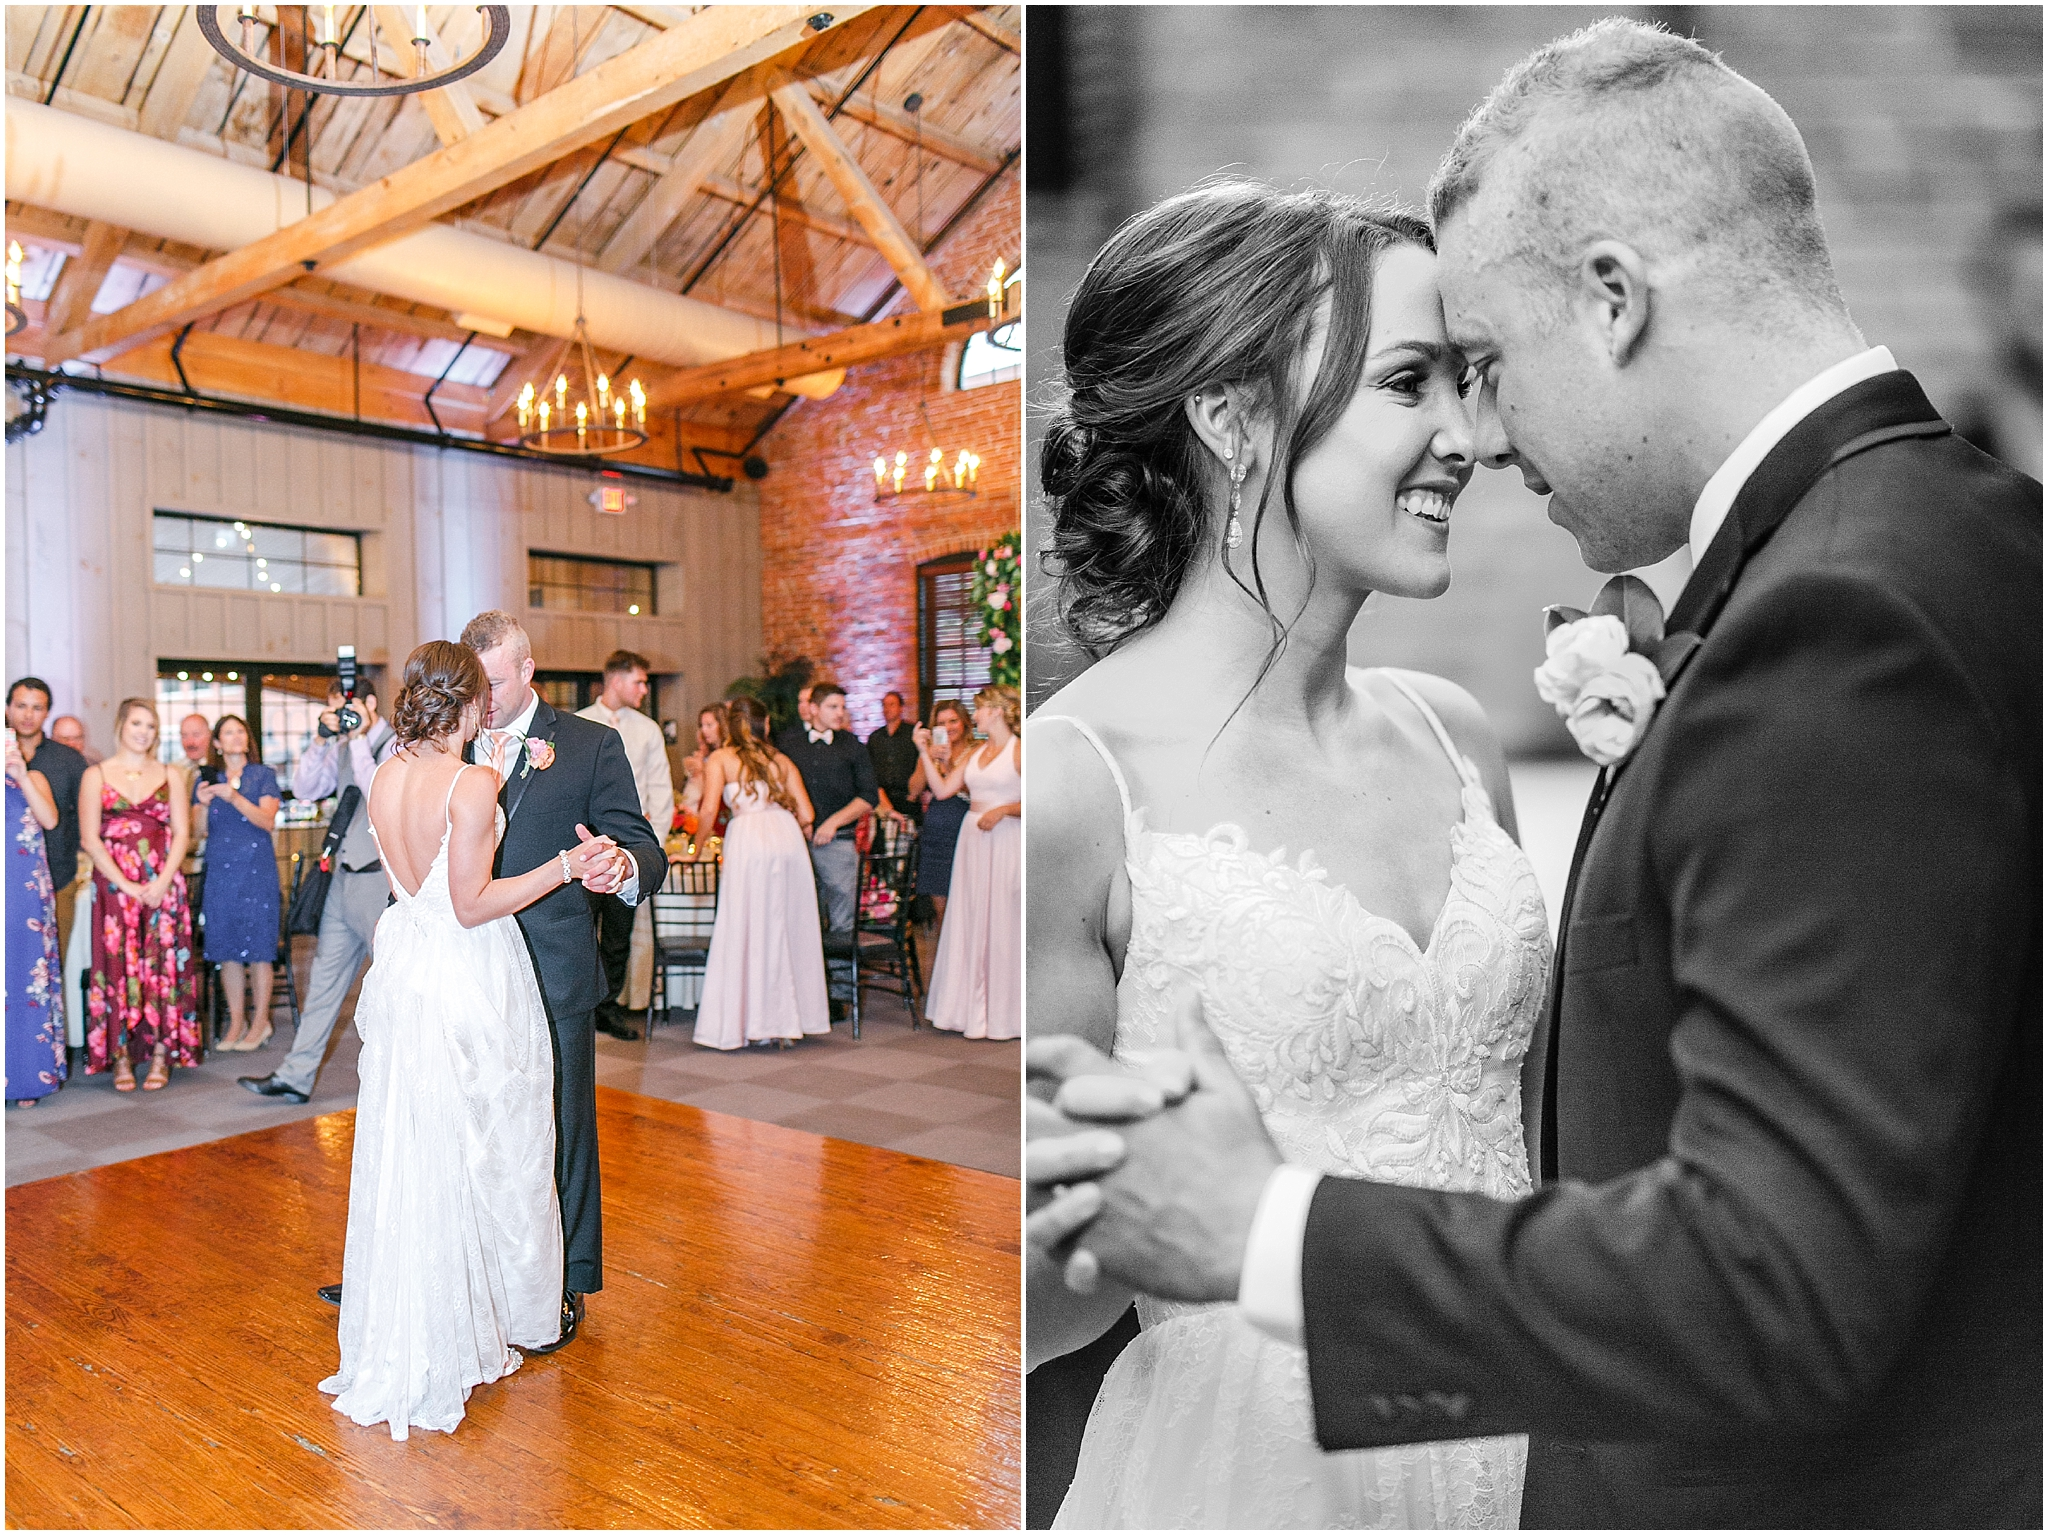 Candle Lit Cork Factory Hotel Wedding, Lancaster PA by Olivia Rae Photography